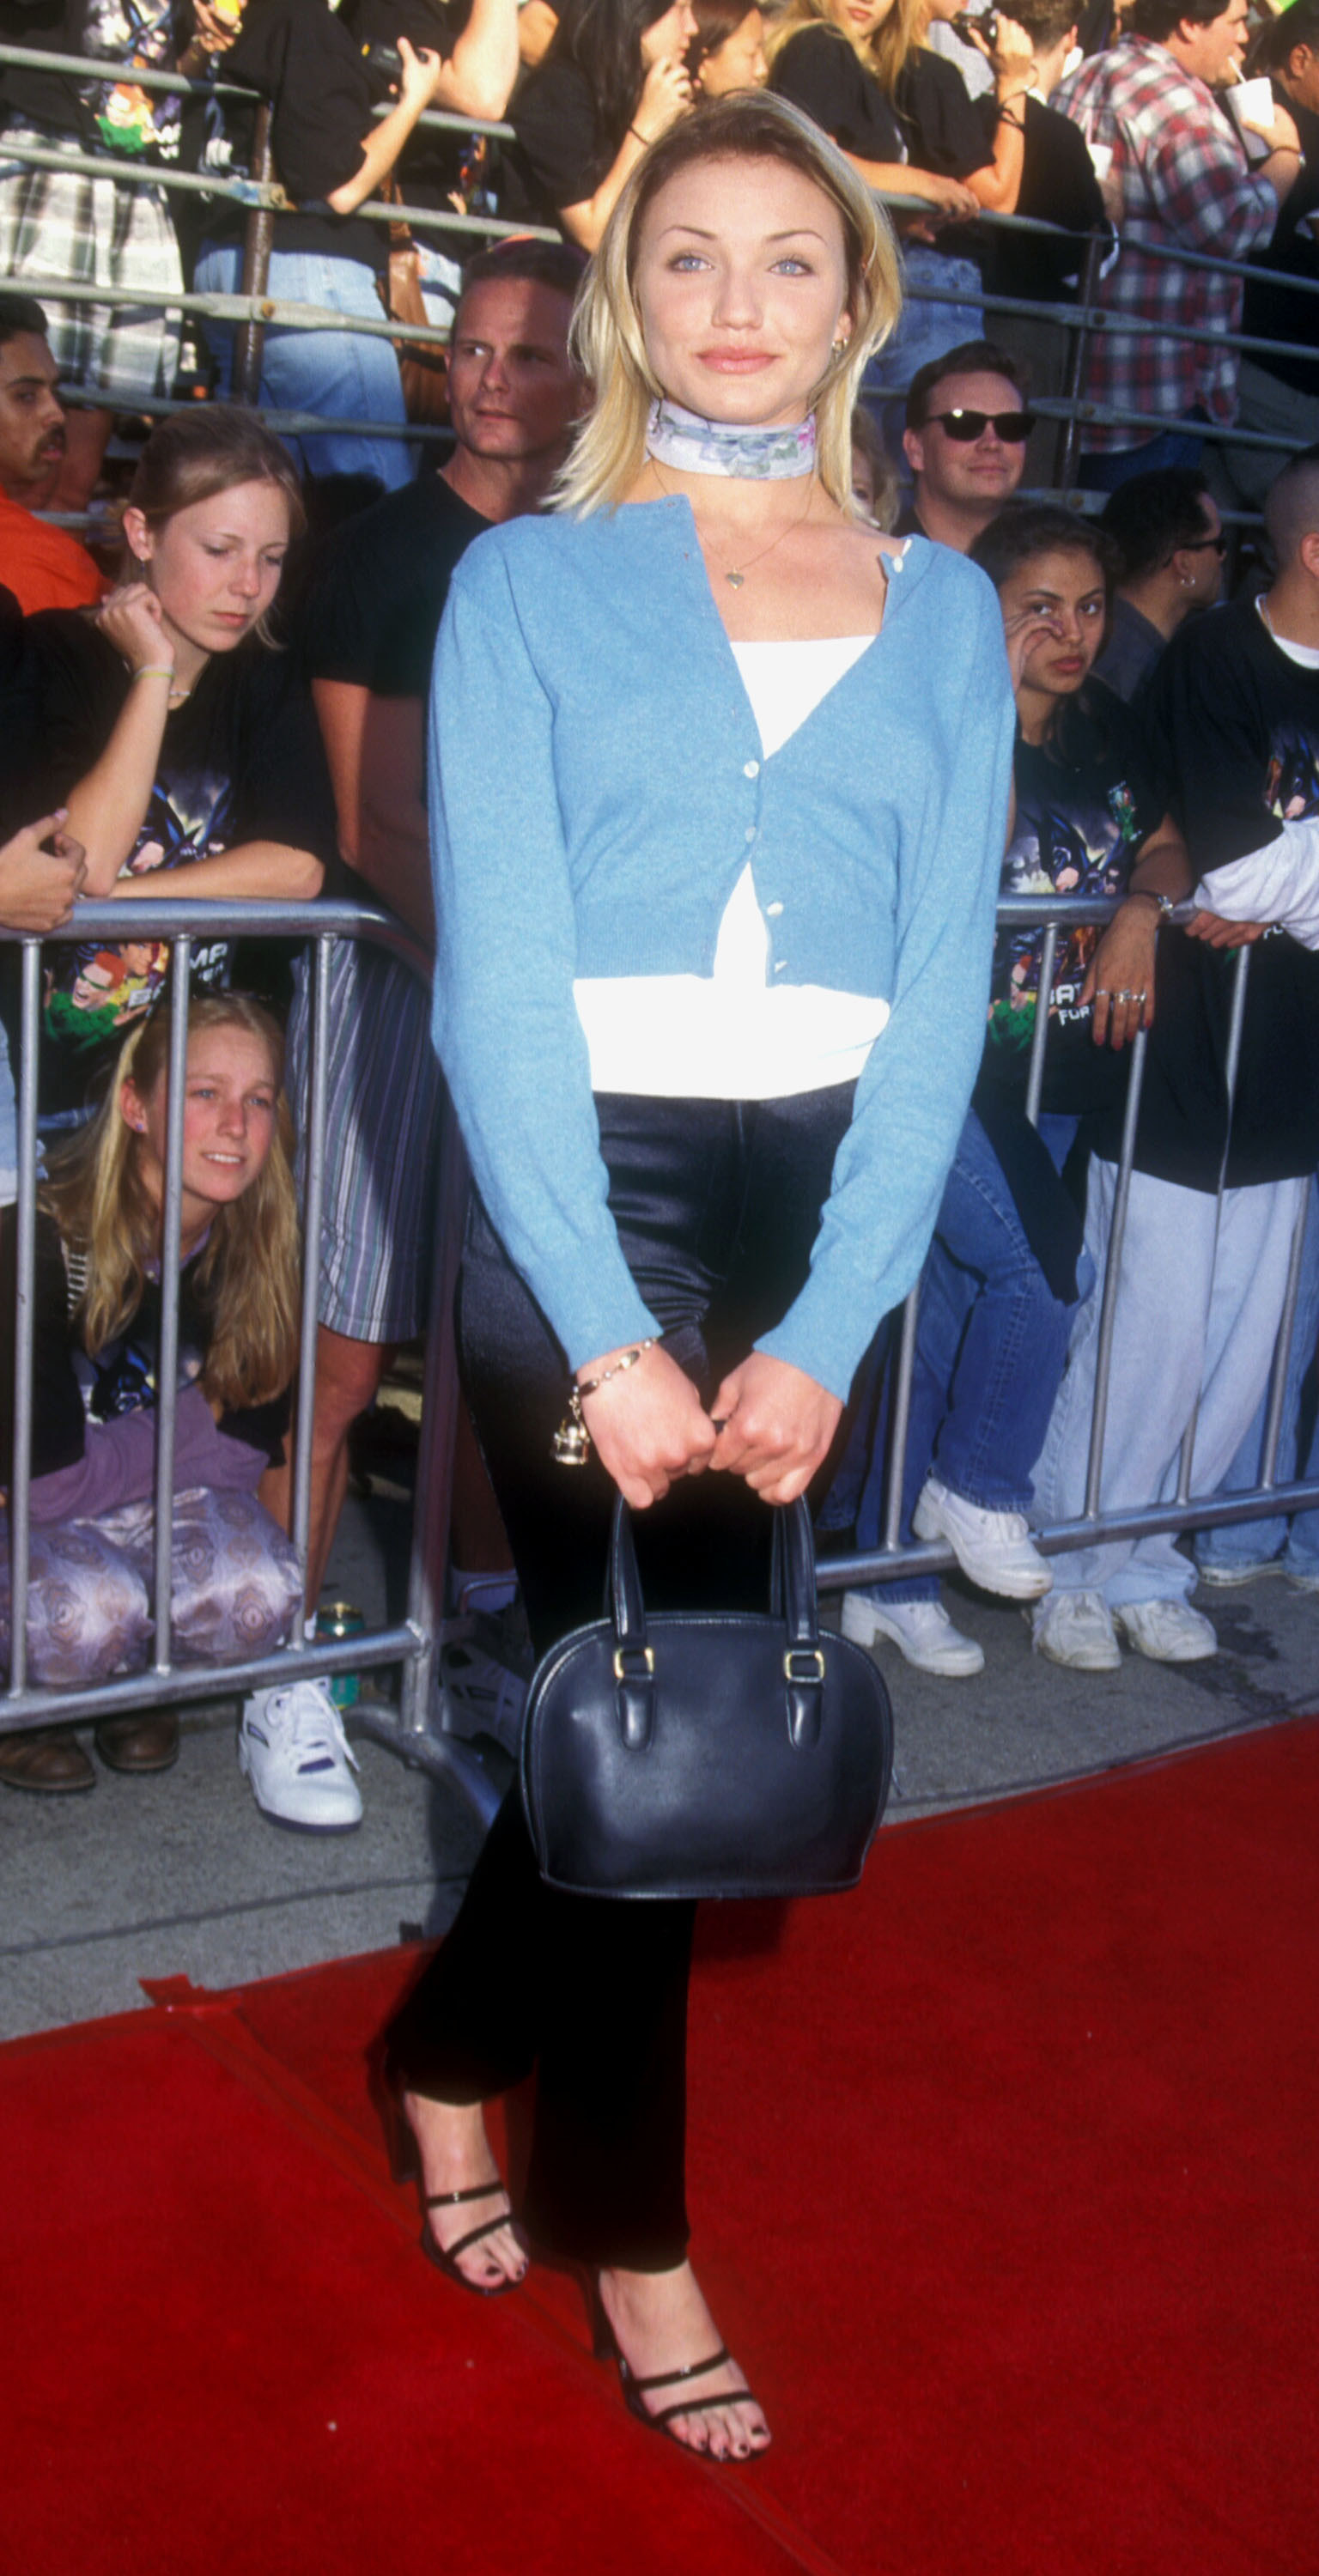 Cameron Diaz in a blue sweater and black pants